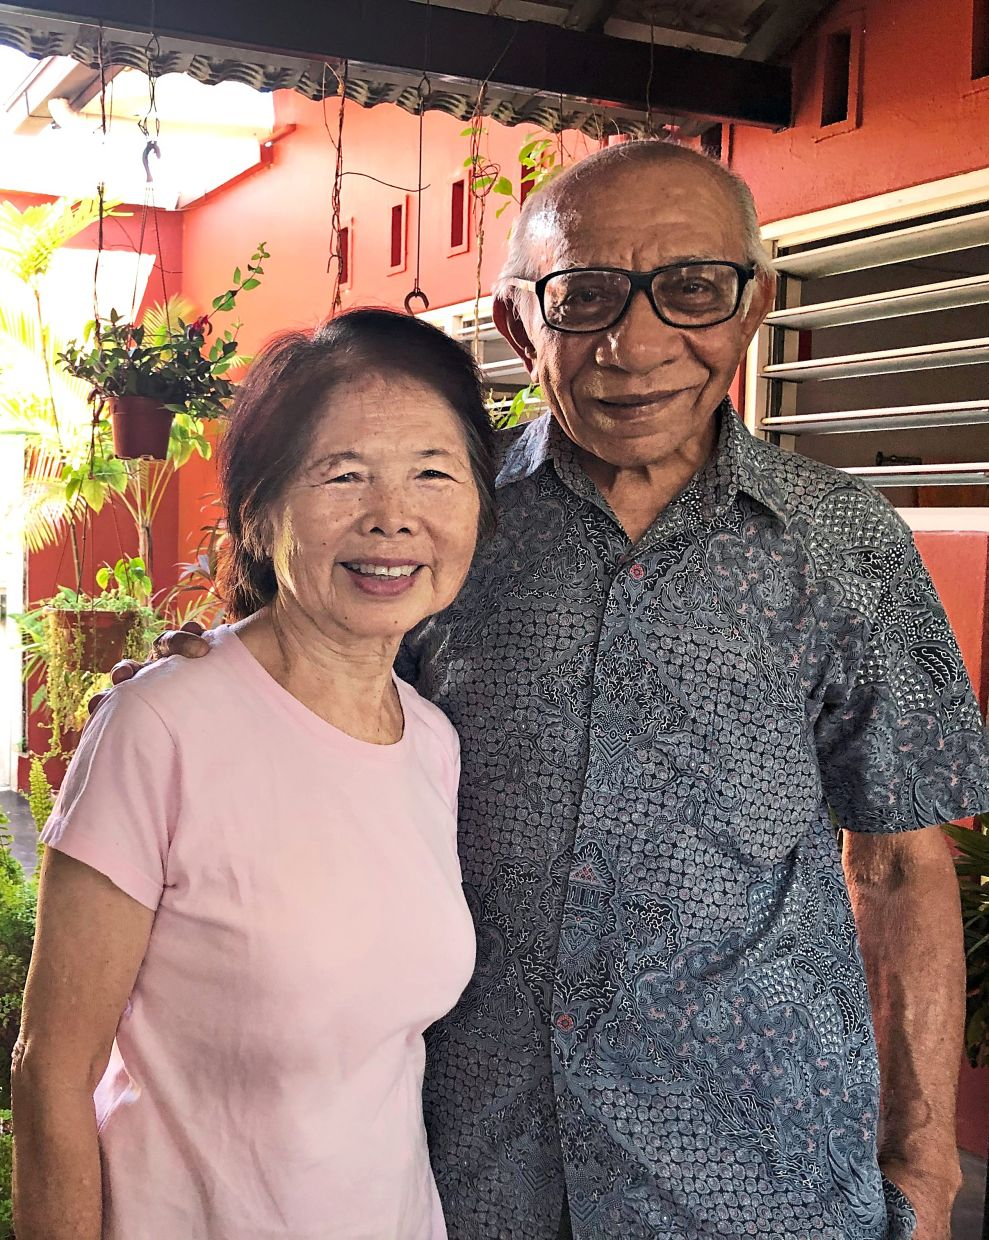 Kak Rose and her husband Anwar Hassan. Photo: The Star/Ming Teoh